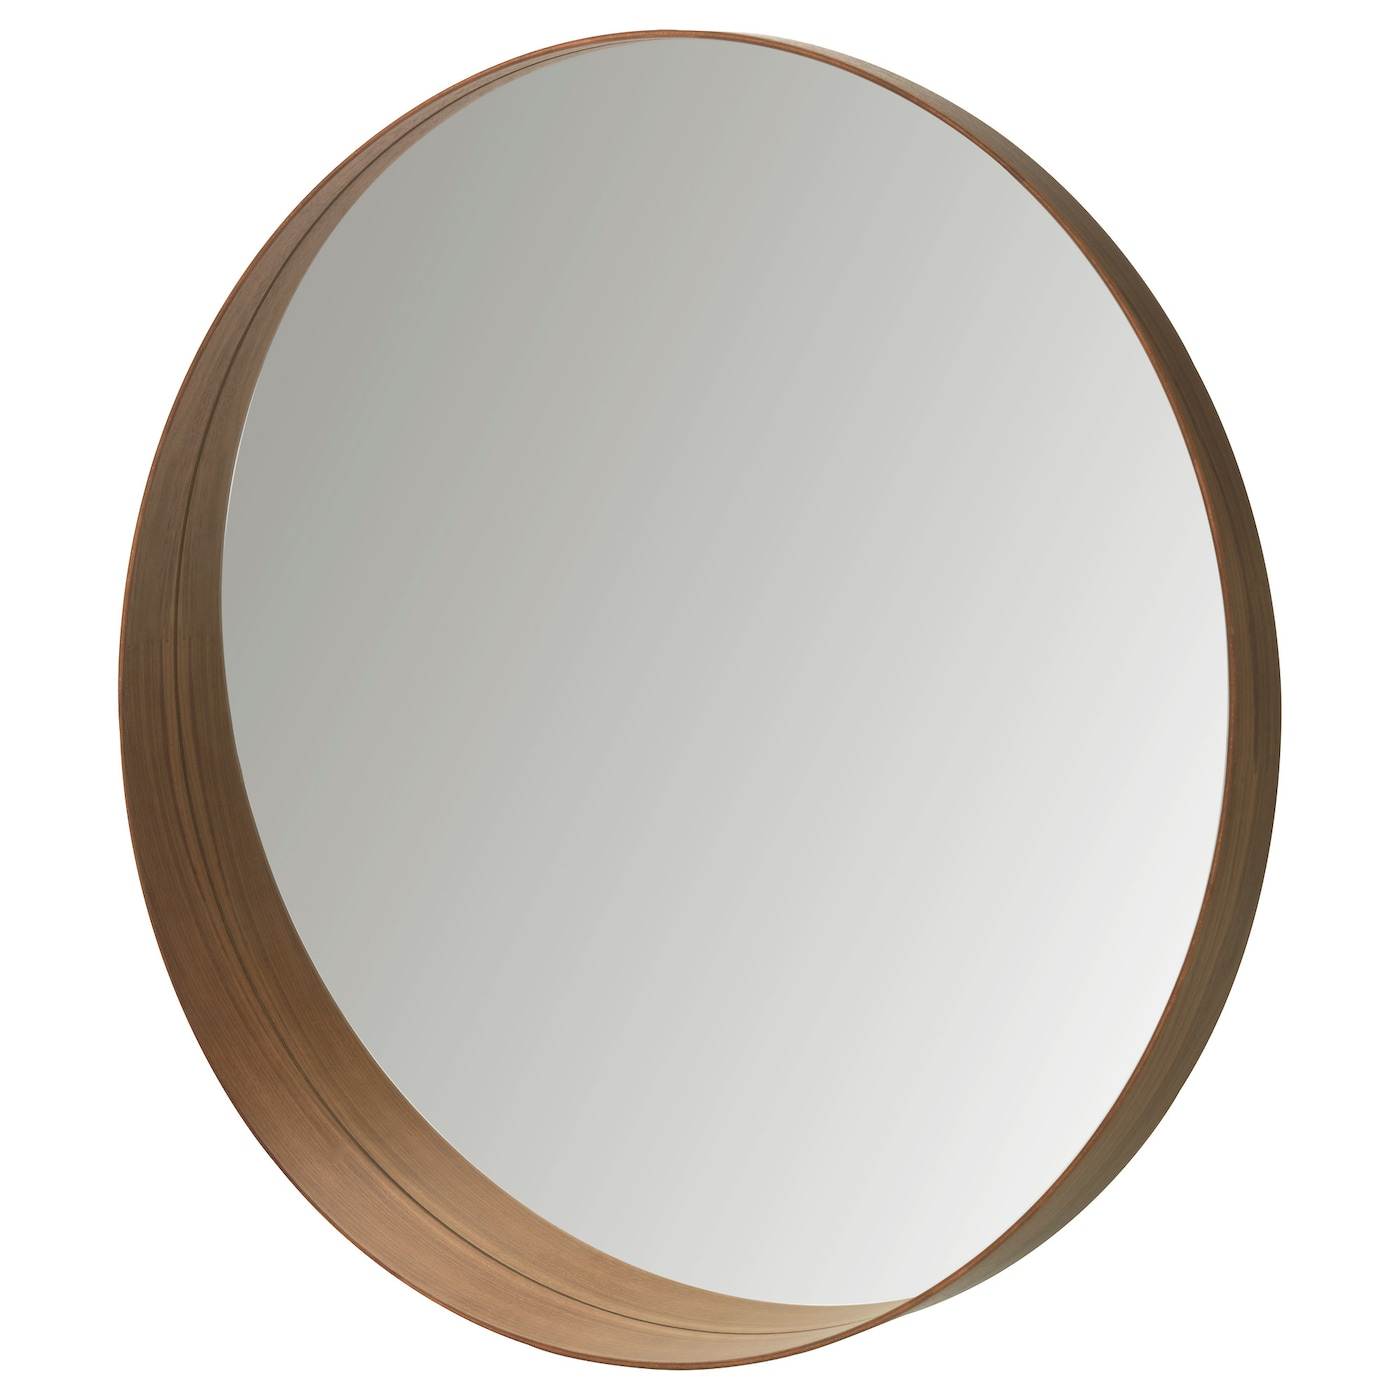 Round mirrors ikea ireland dublin for Circle mirror